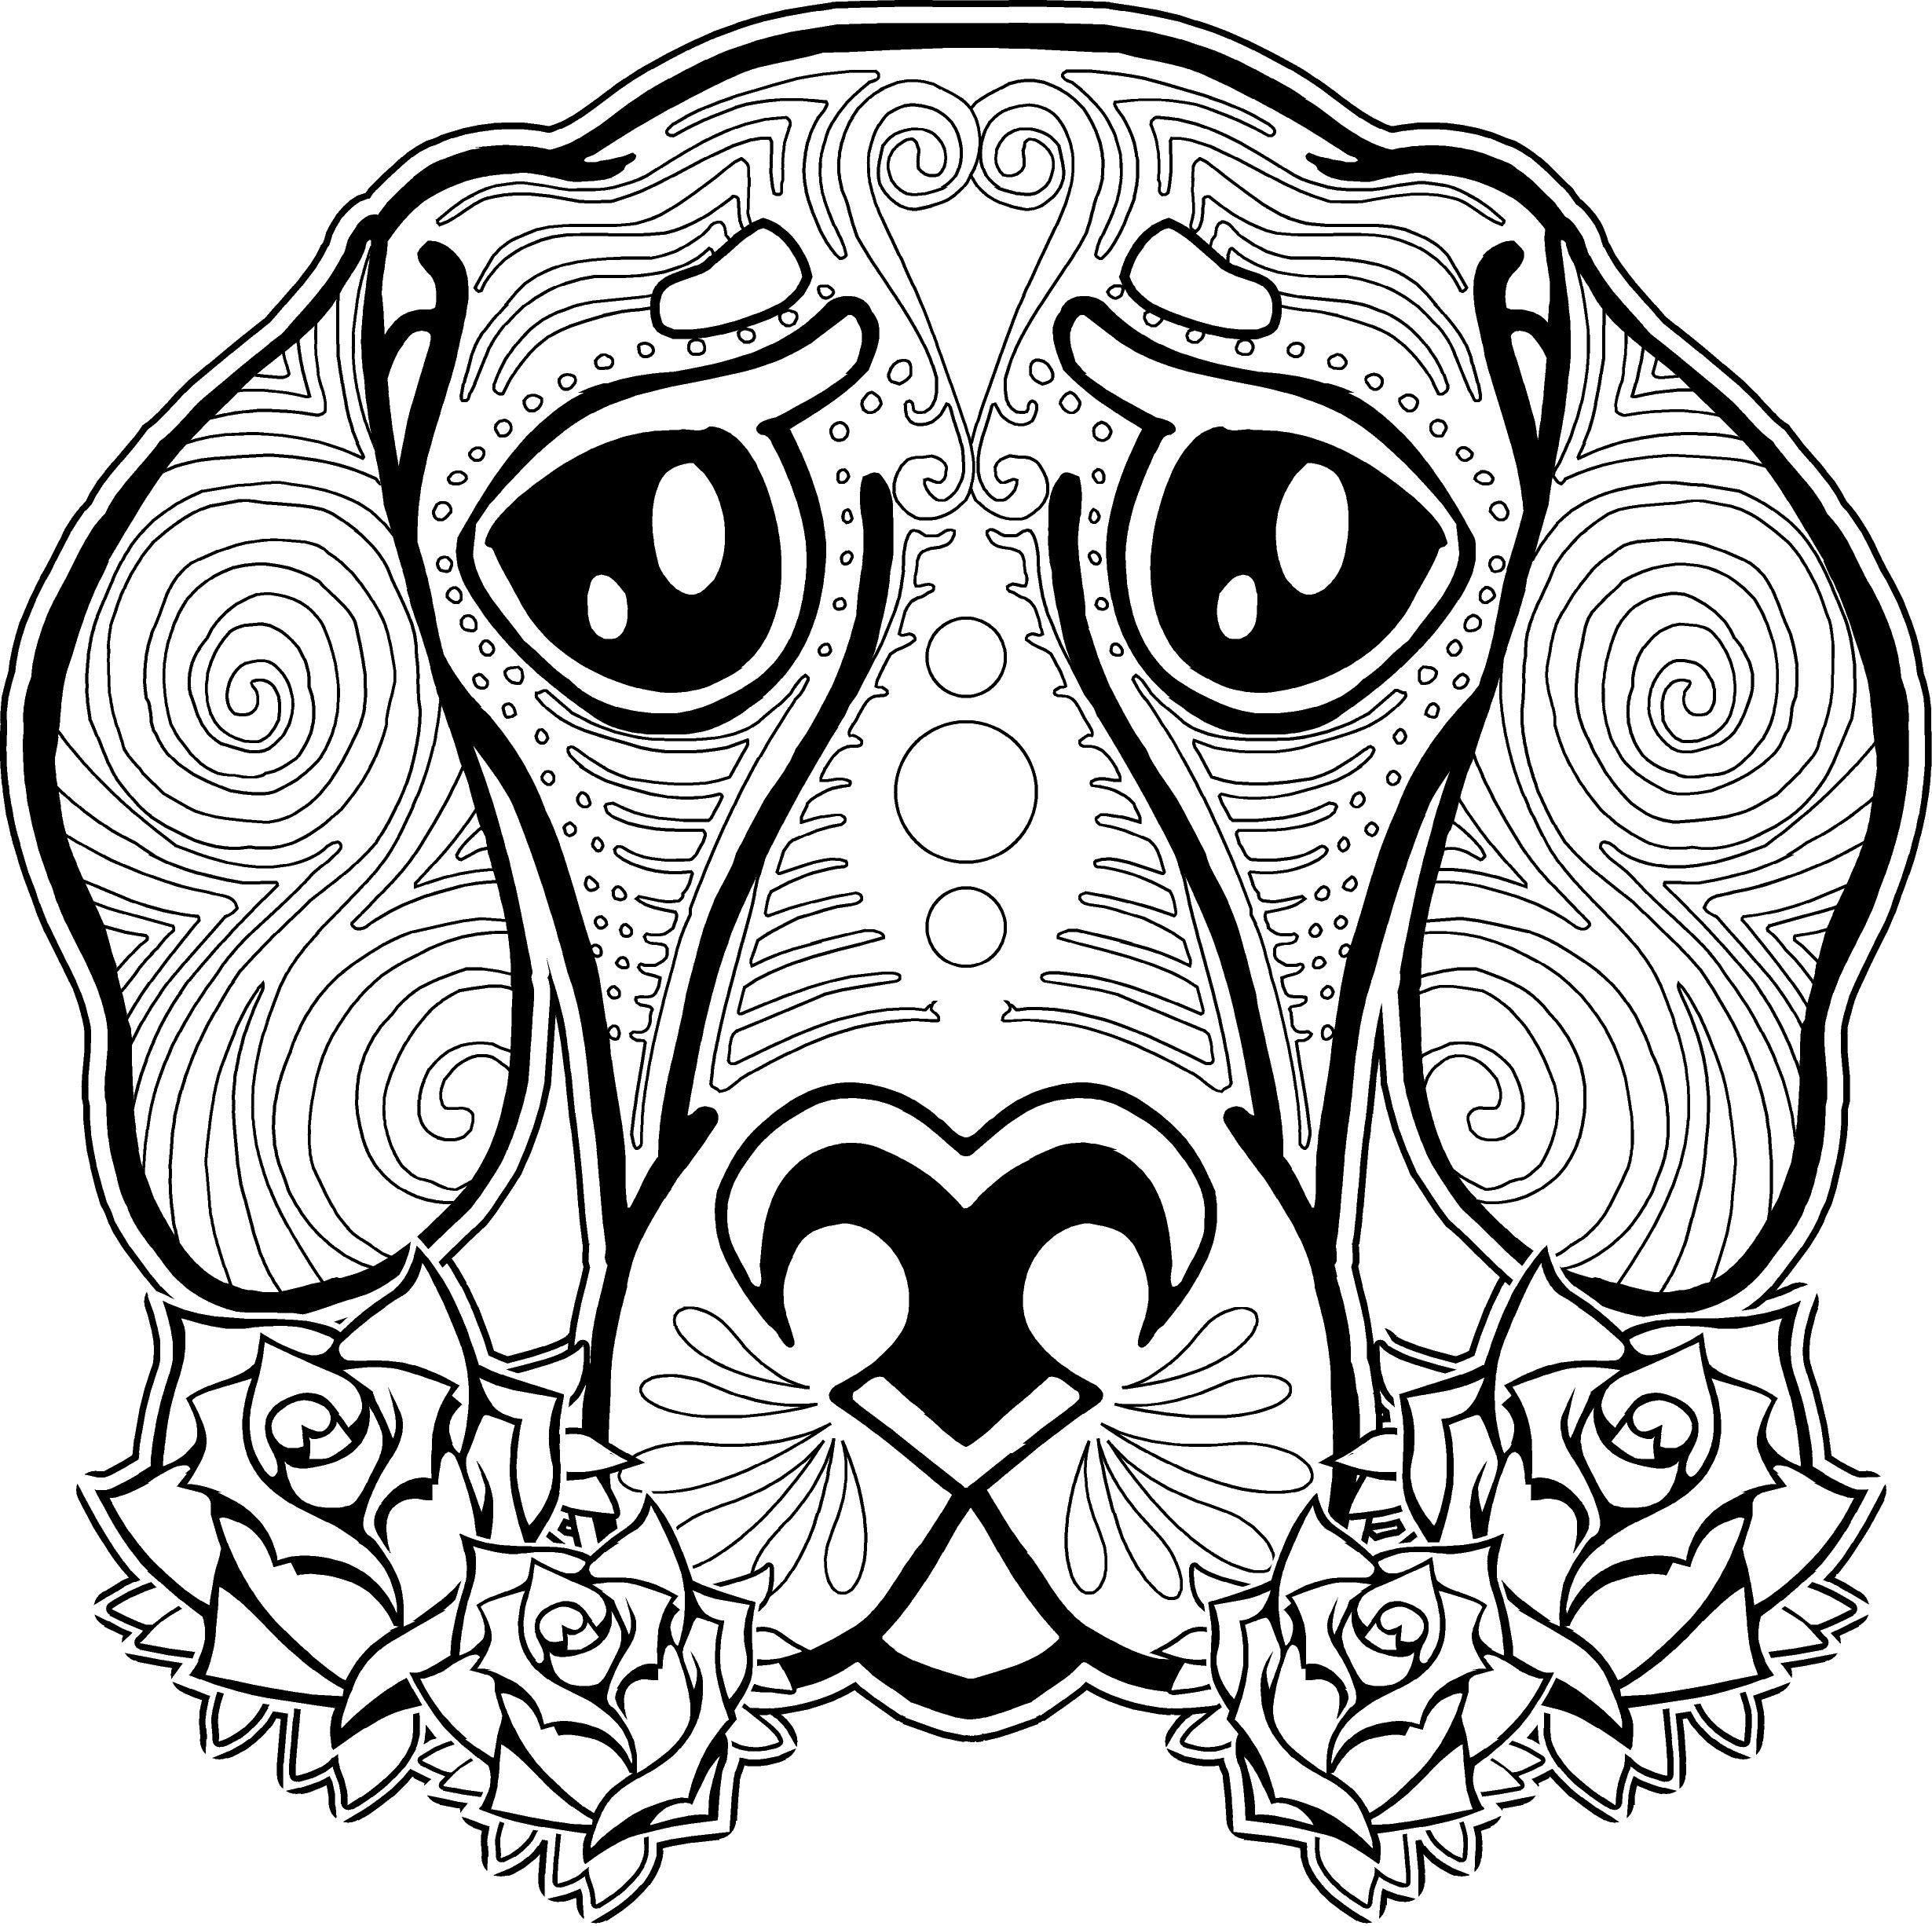 Dog Coloring Page Dog Coloring Pages Free Coloring Page Free Coloring Pages For Adults Sugar Sku Dog Coloring Page Mandala Coloring Pages Cat Coloring Page